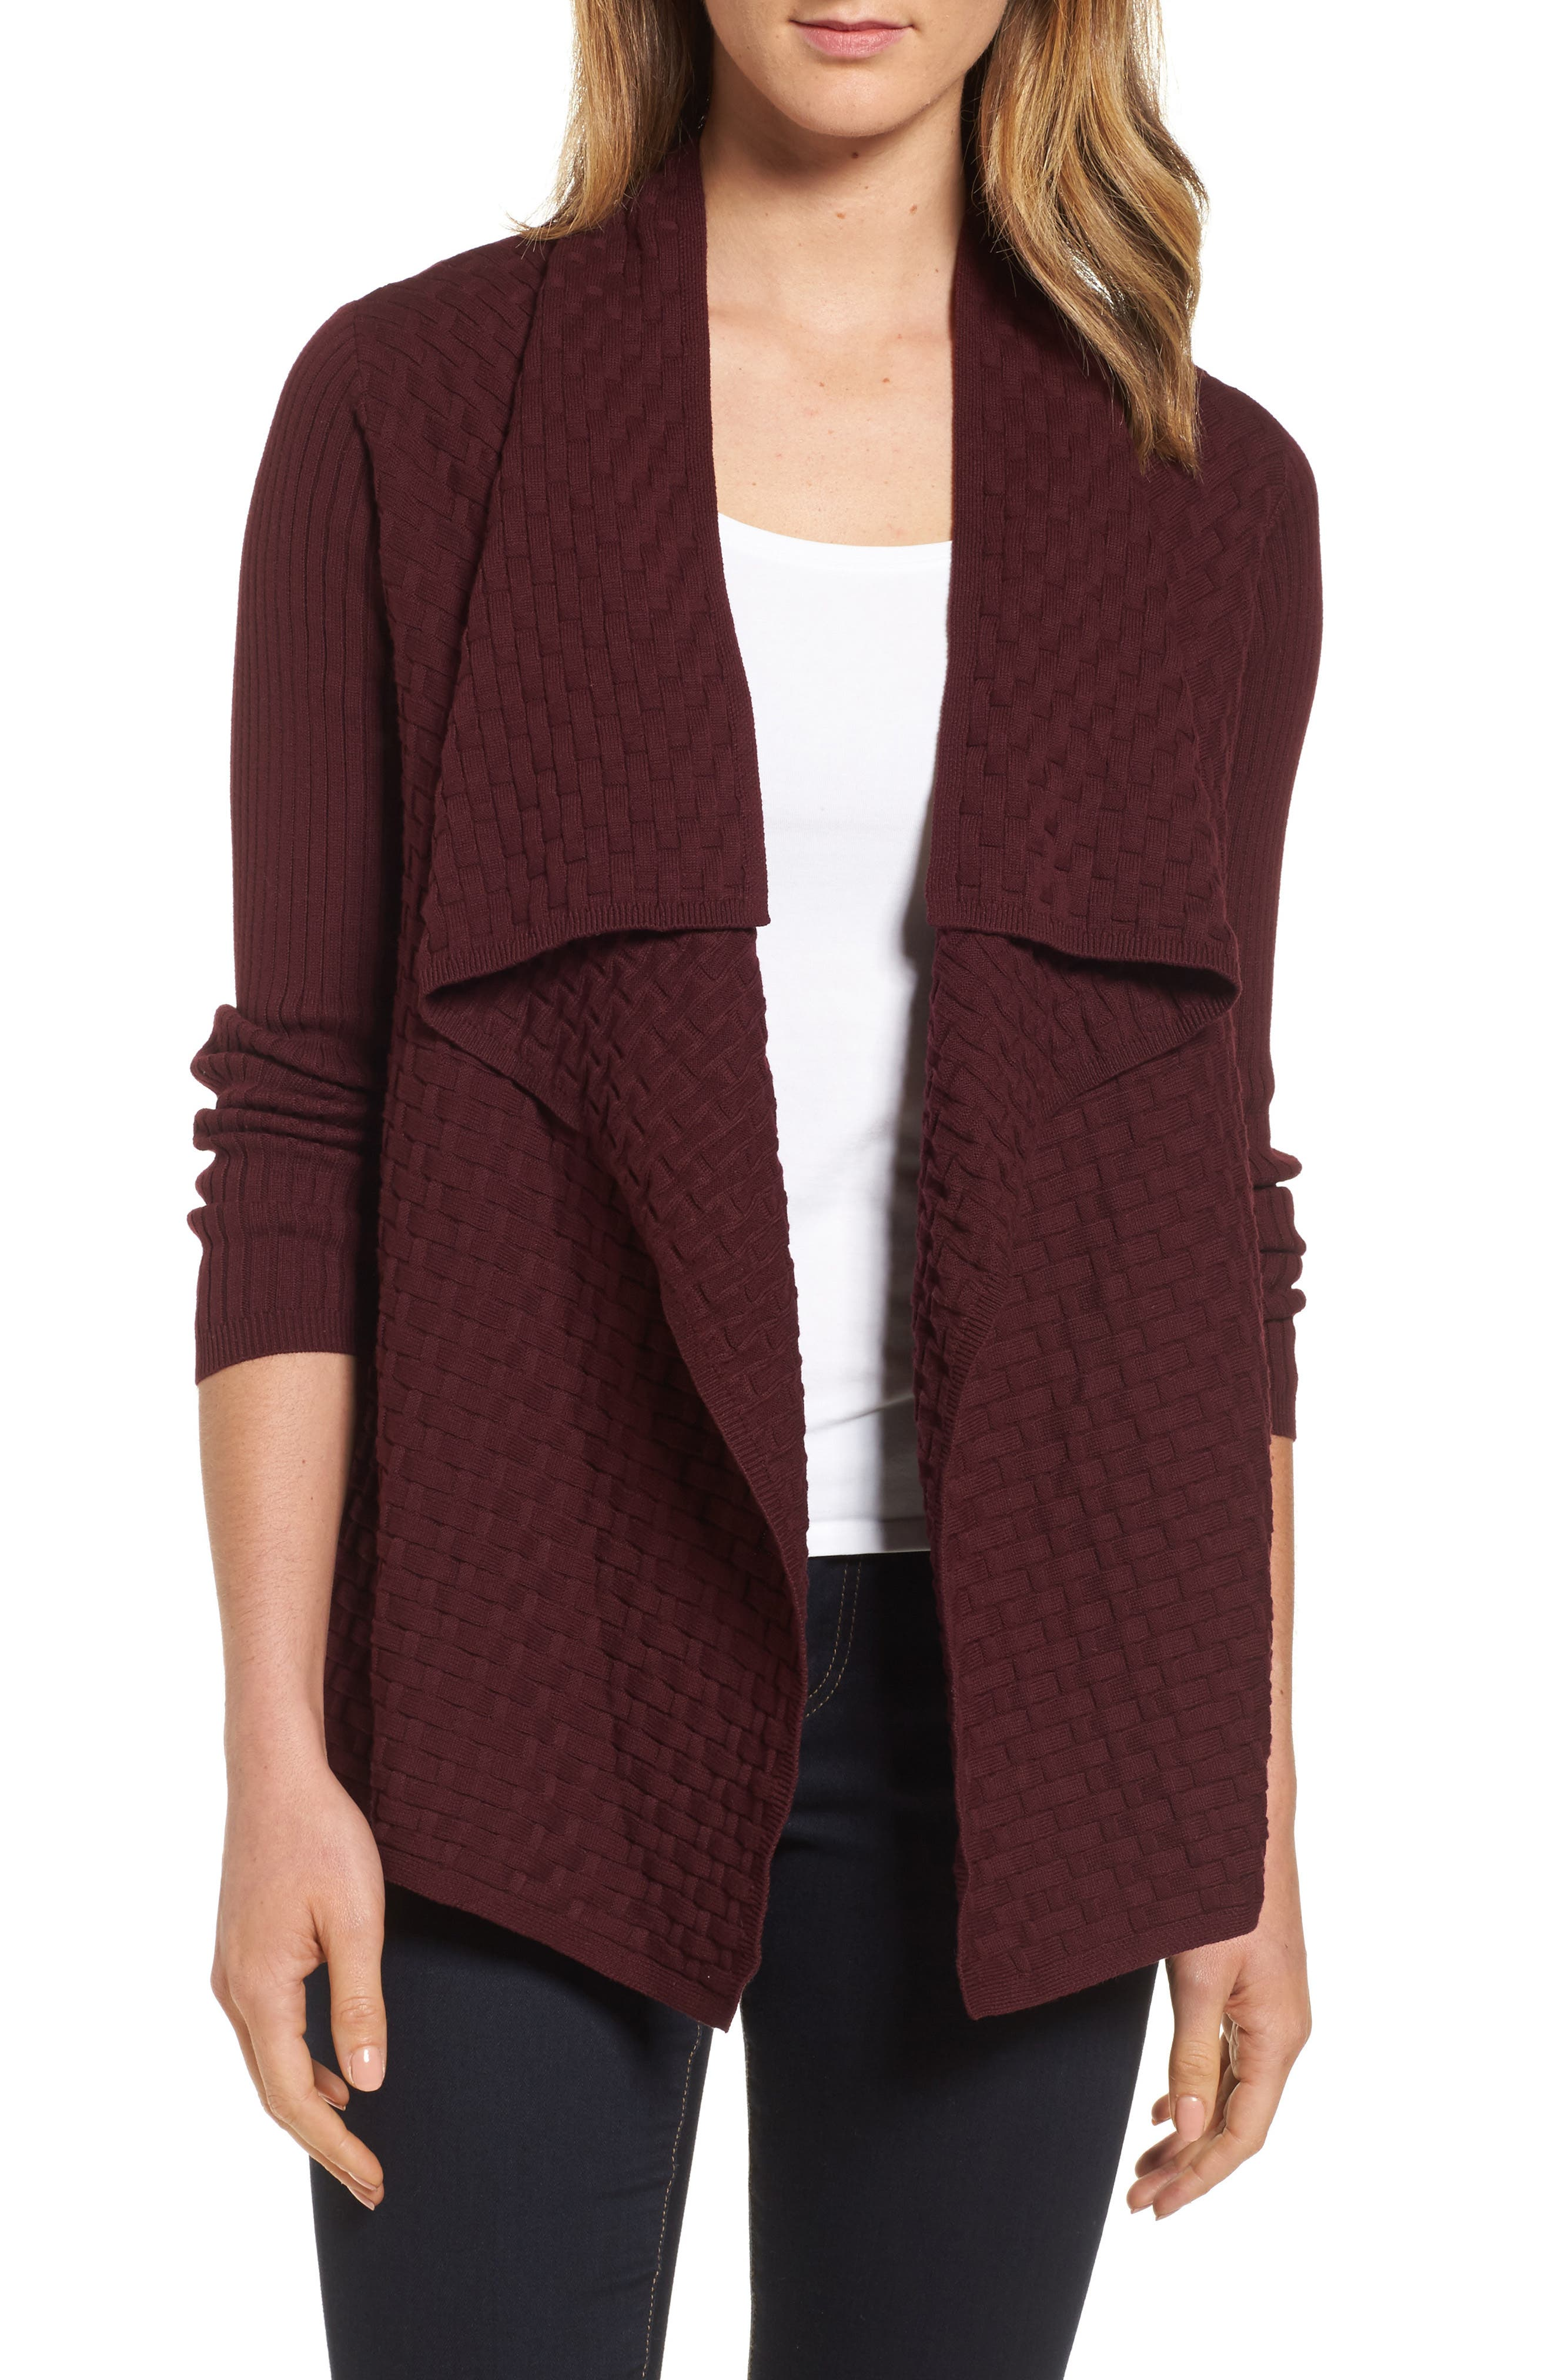 Alternate Image 1 Selected - Chaus Mixed Cotton Knit Cardigan